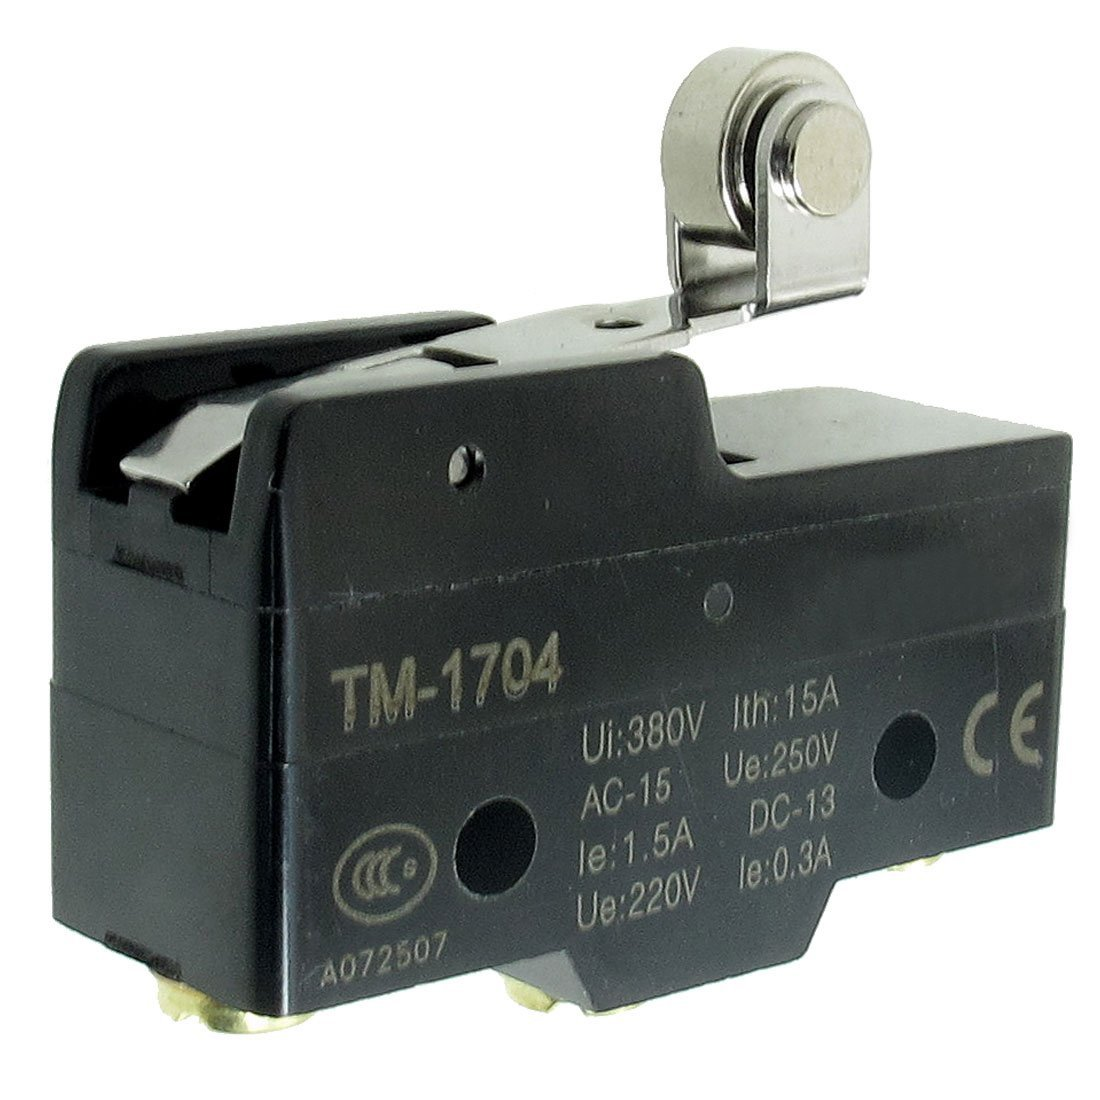 SODIAL(R) TM-1704 Short Hinge Roller Lever Momentary Micro Limit Switch